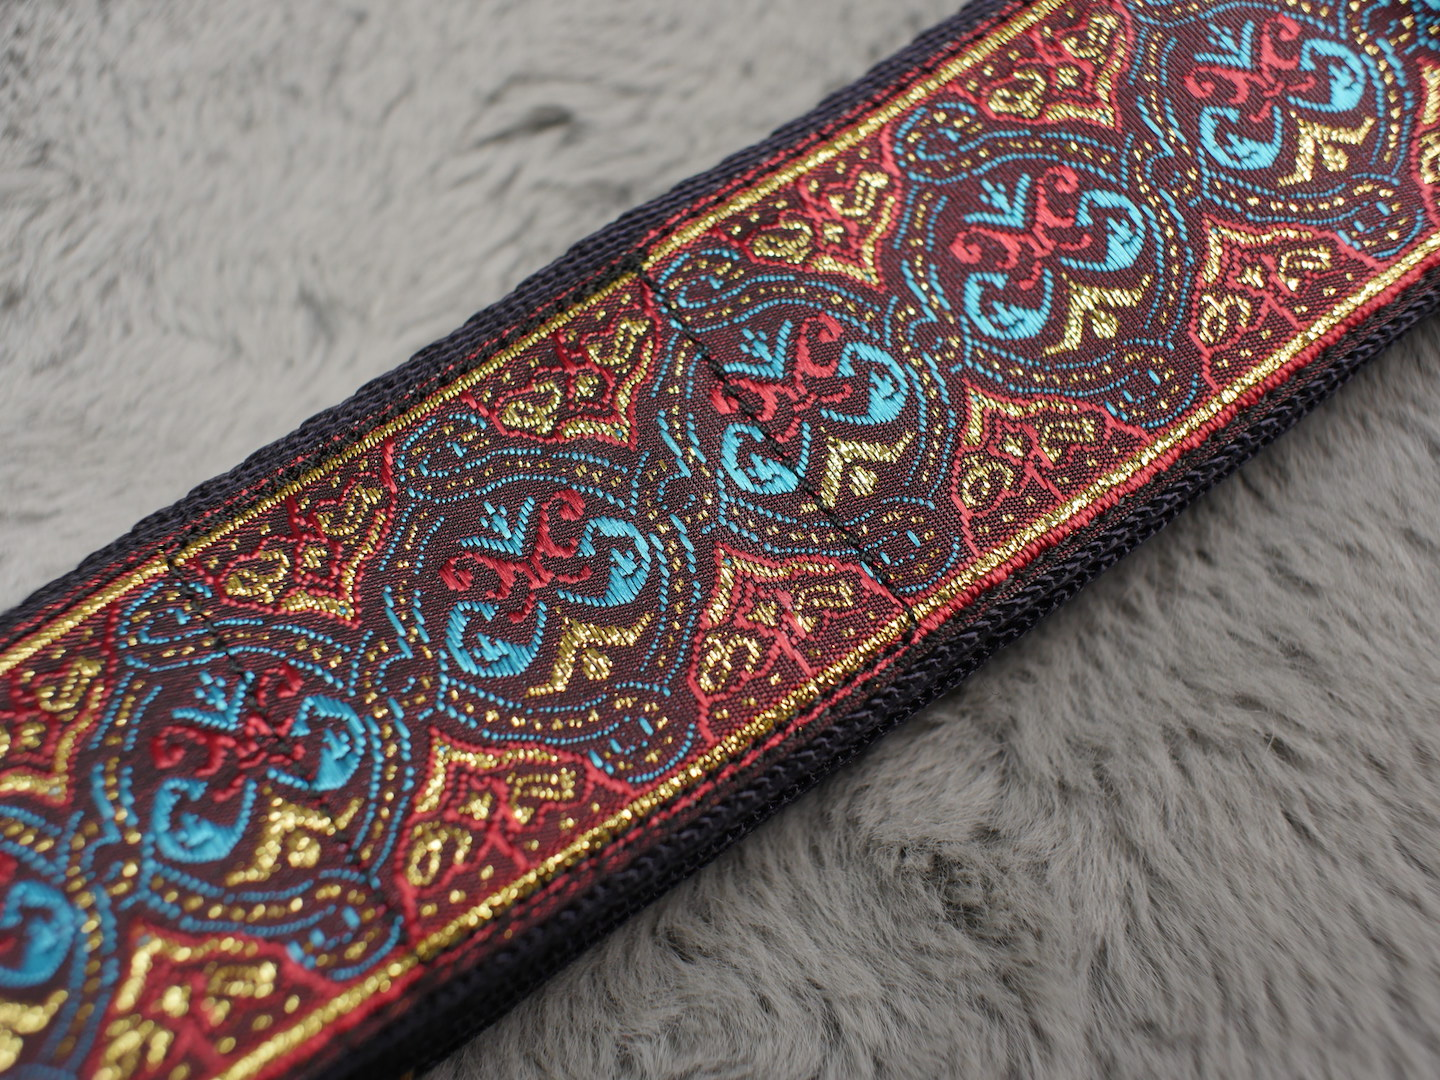 Air Straps Limited Edition 'Loki' Guitar Strap